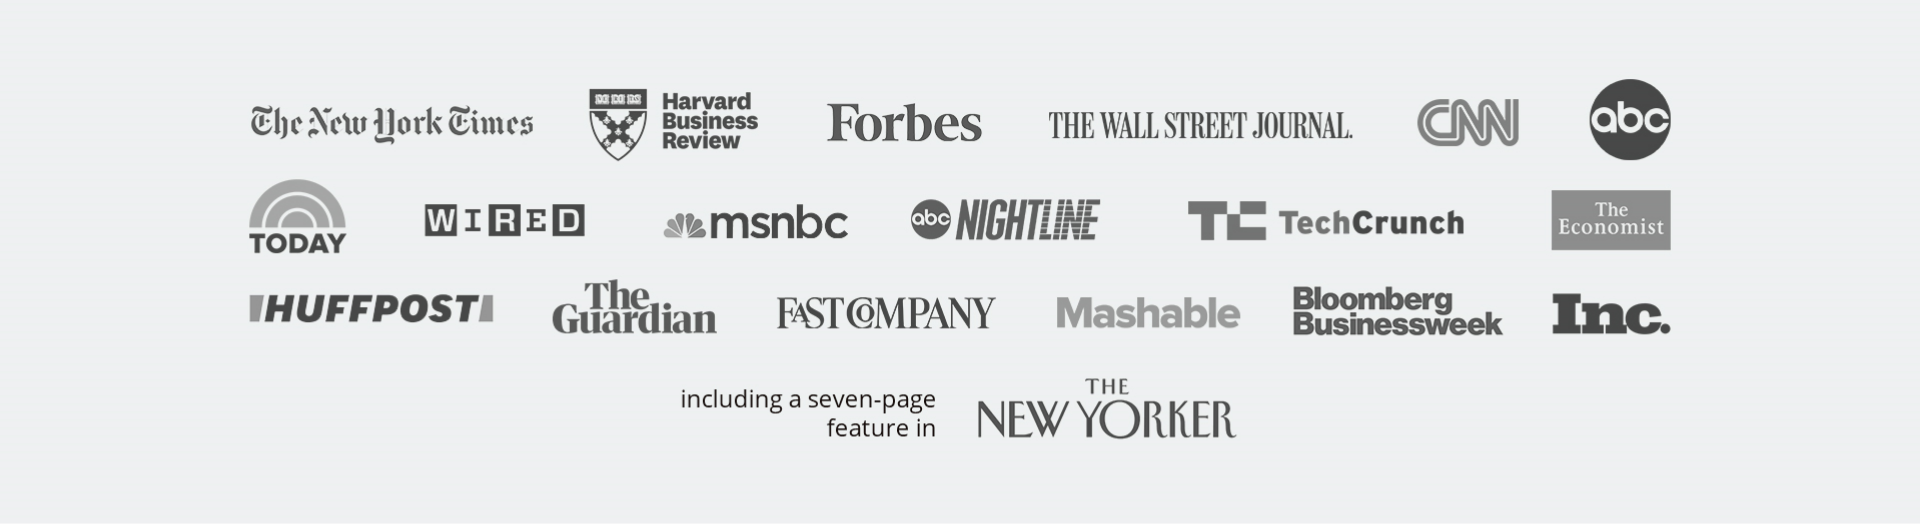 List of logos from major news outlets